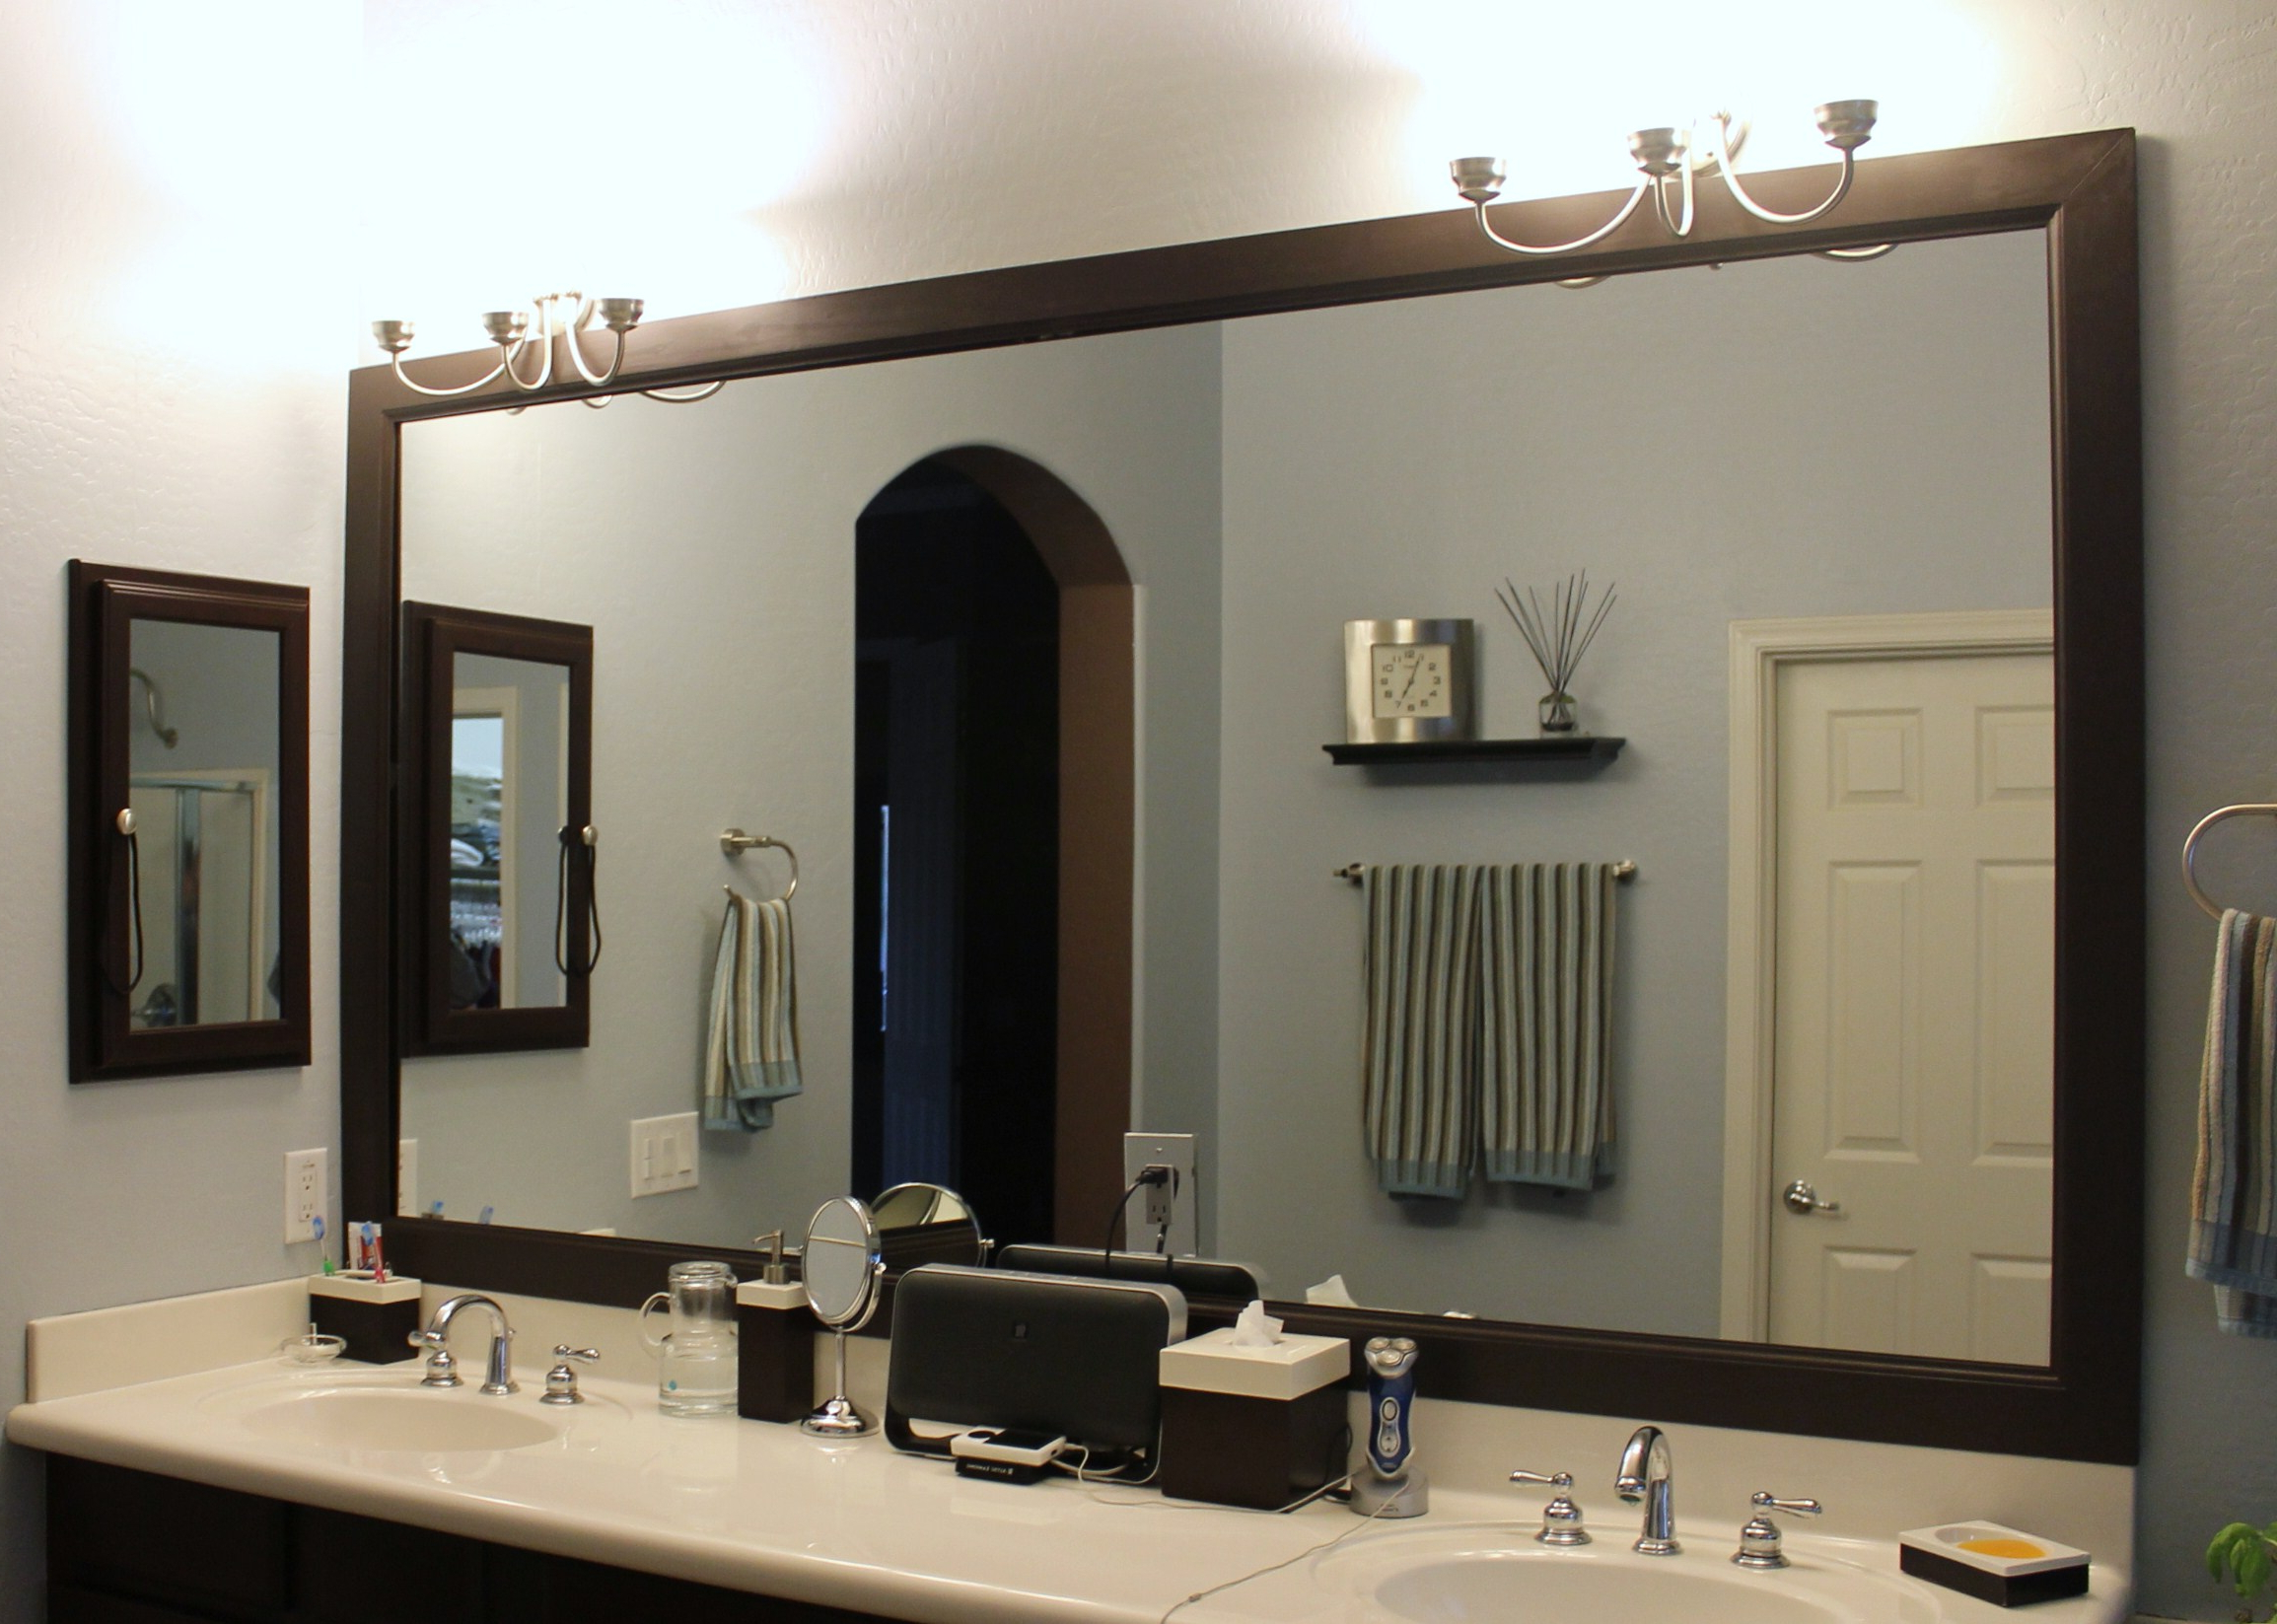 Delightful Framed Mirrors For Bathrooms Ideas – Kiakiyo In Best And Newest Frame Bathroom Wall Mirrors (View 16 of 20)